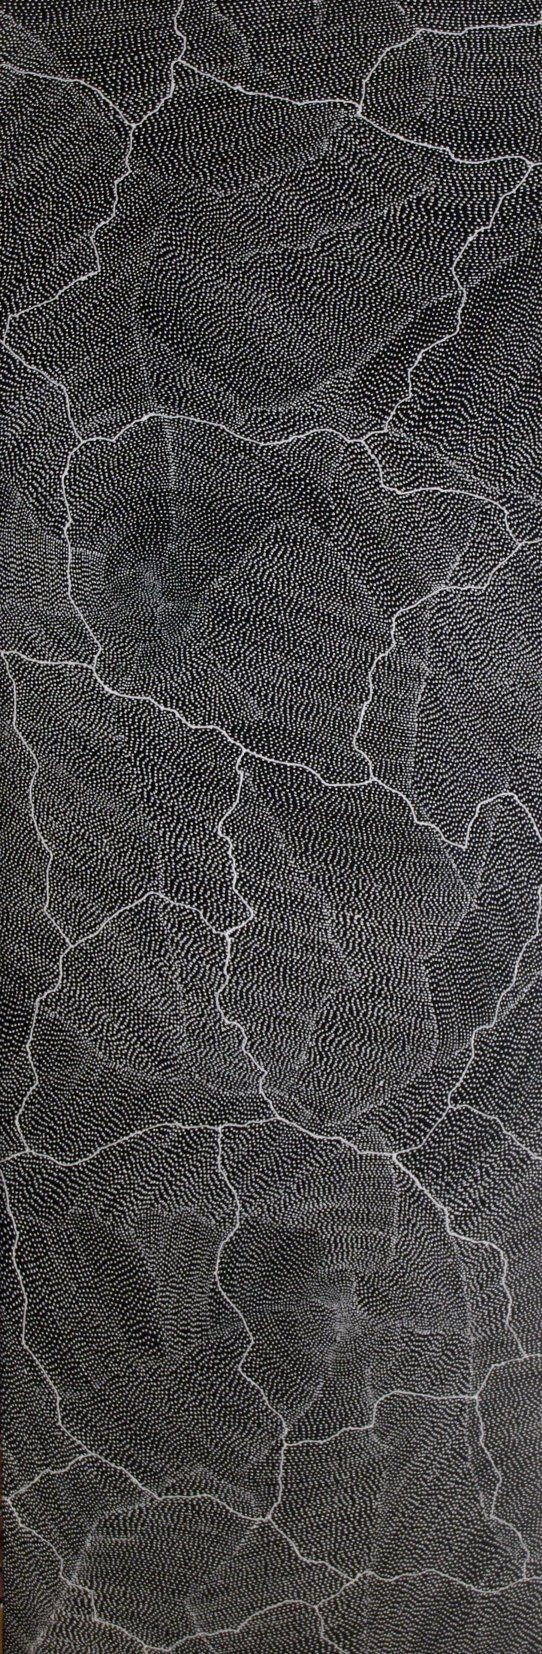 Another fantastic piece of Australian Aboriginal Art  by Sarrita King / Lightning (5A) is the title of the work. Click the image   to view more details and lots more incredible artworks from these amazingly talented artists.   Thanks